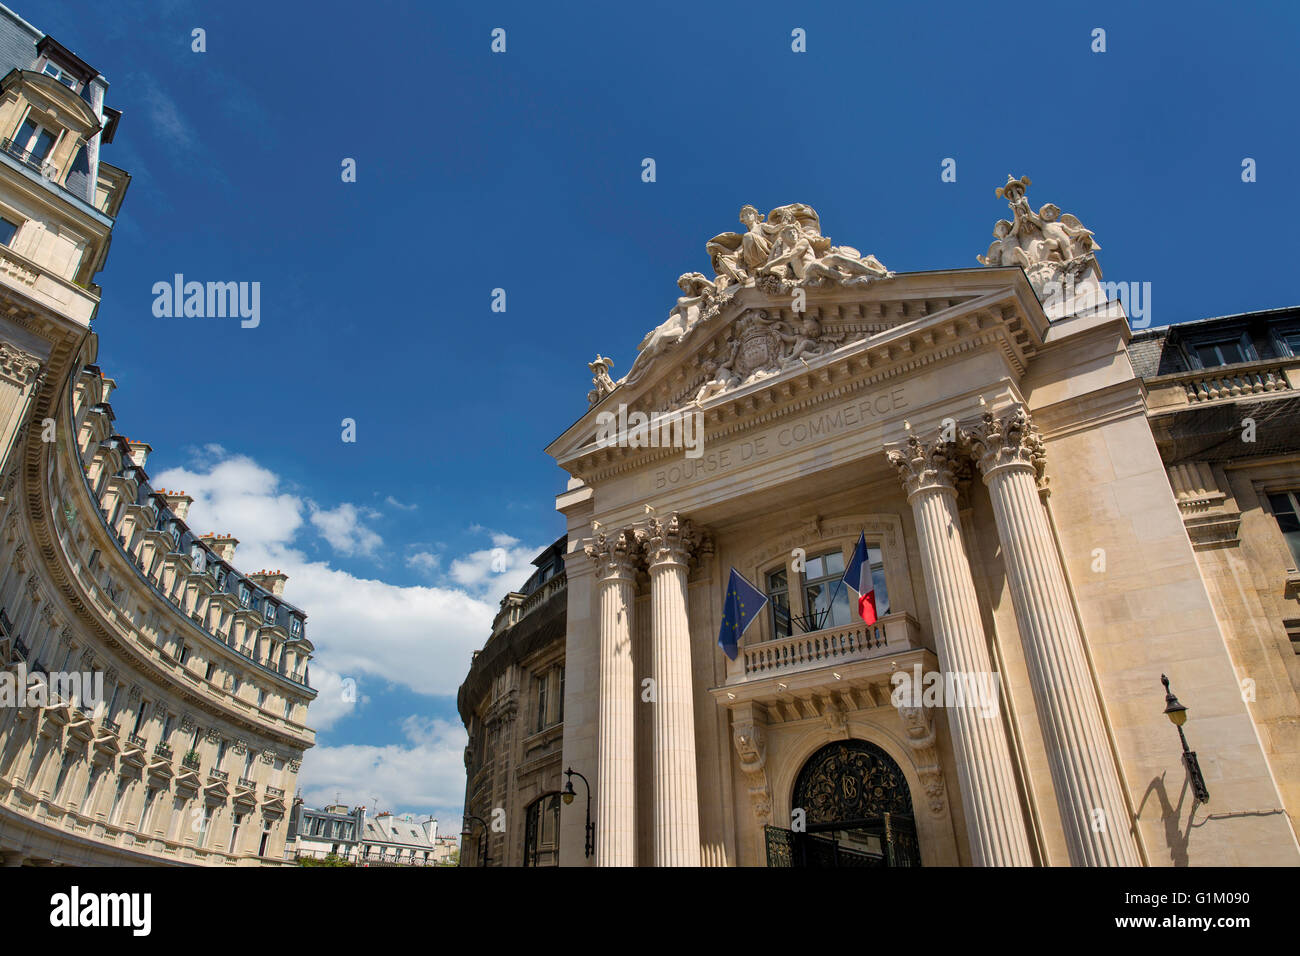 Bourse de Commerce building b.1767, originally a commodities trade center, now the Chamber of Commerce, Paris, France - Stock Image